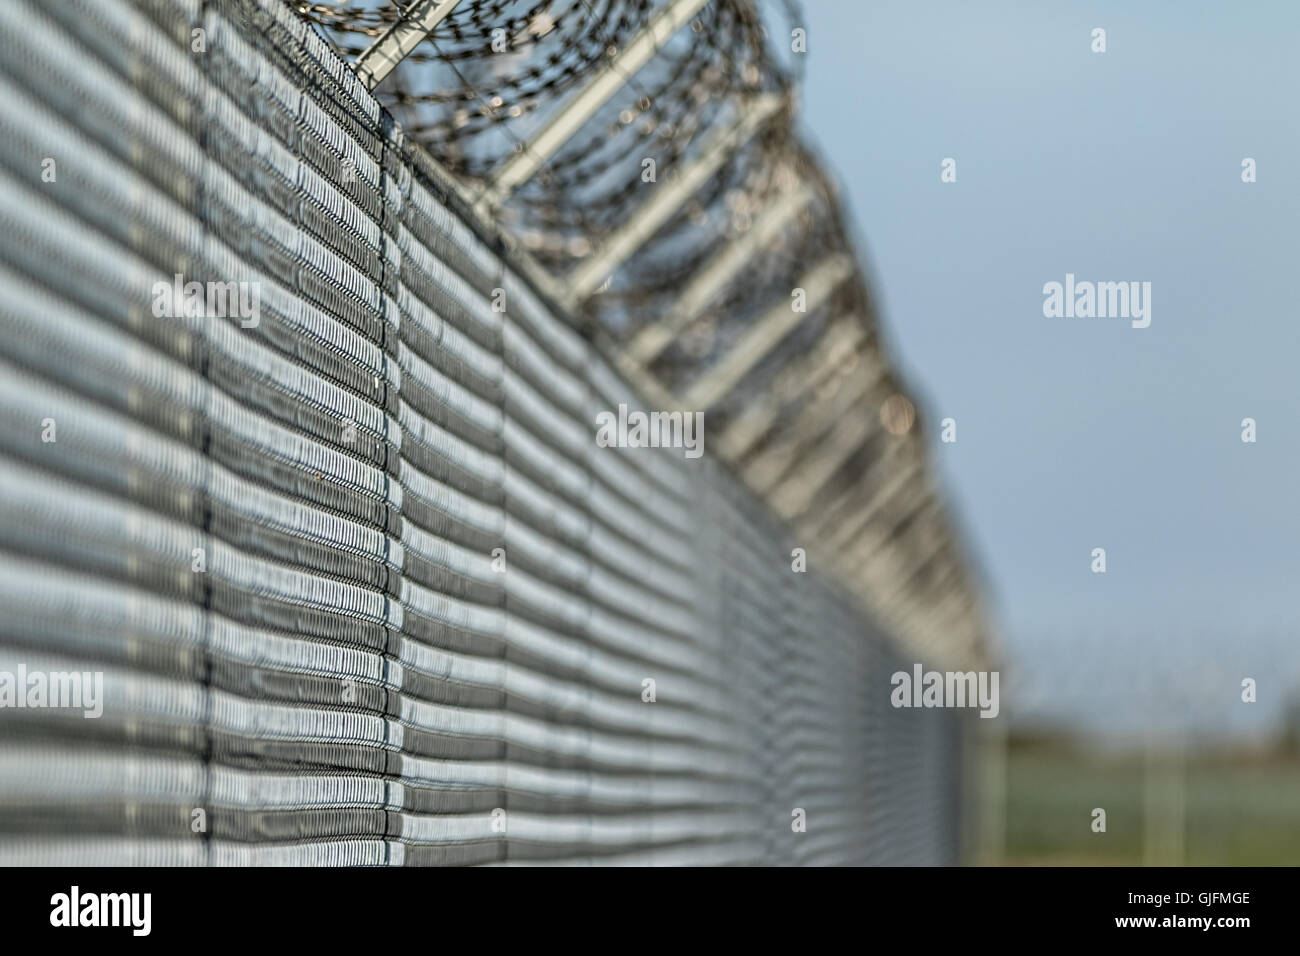 Barbwire fence against illegal immigration concept picture - Stock Image